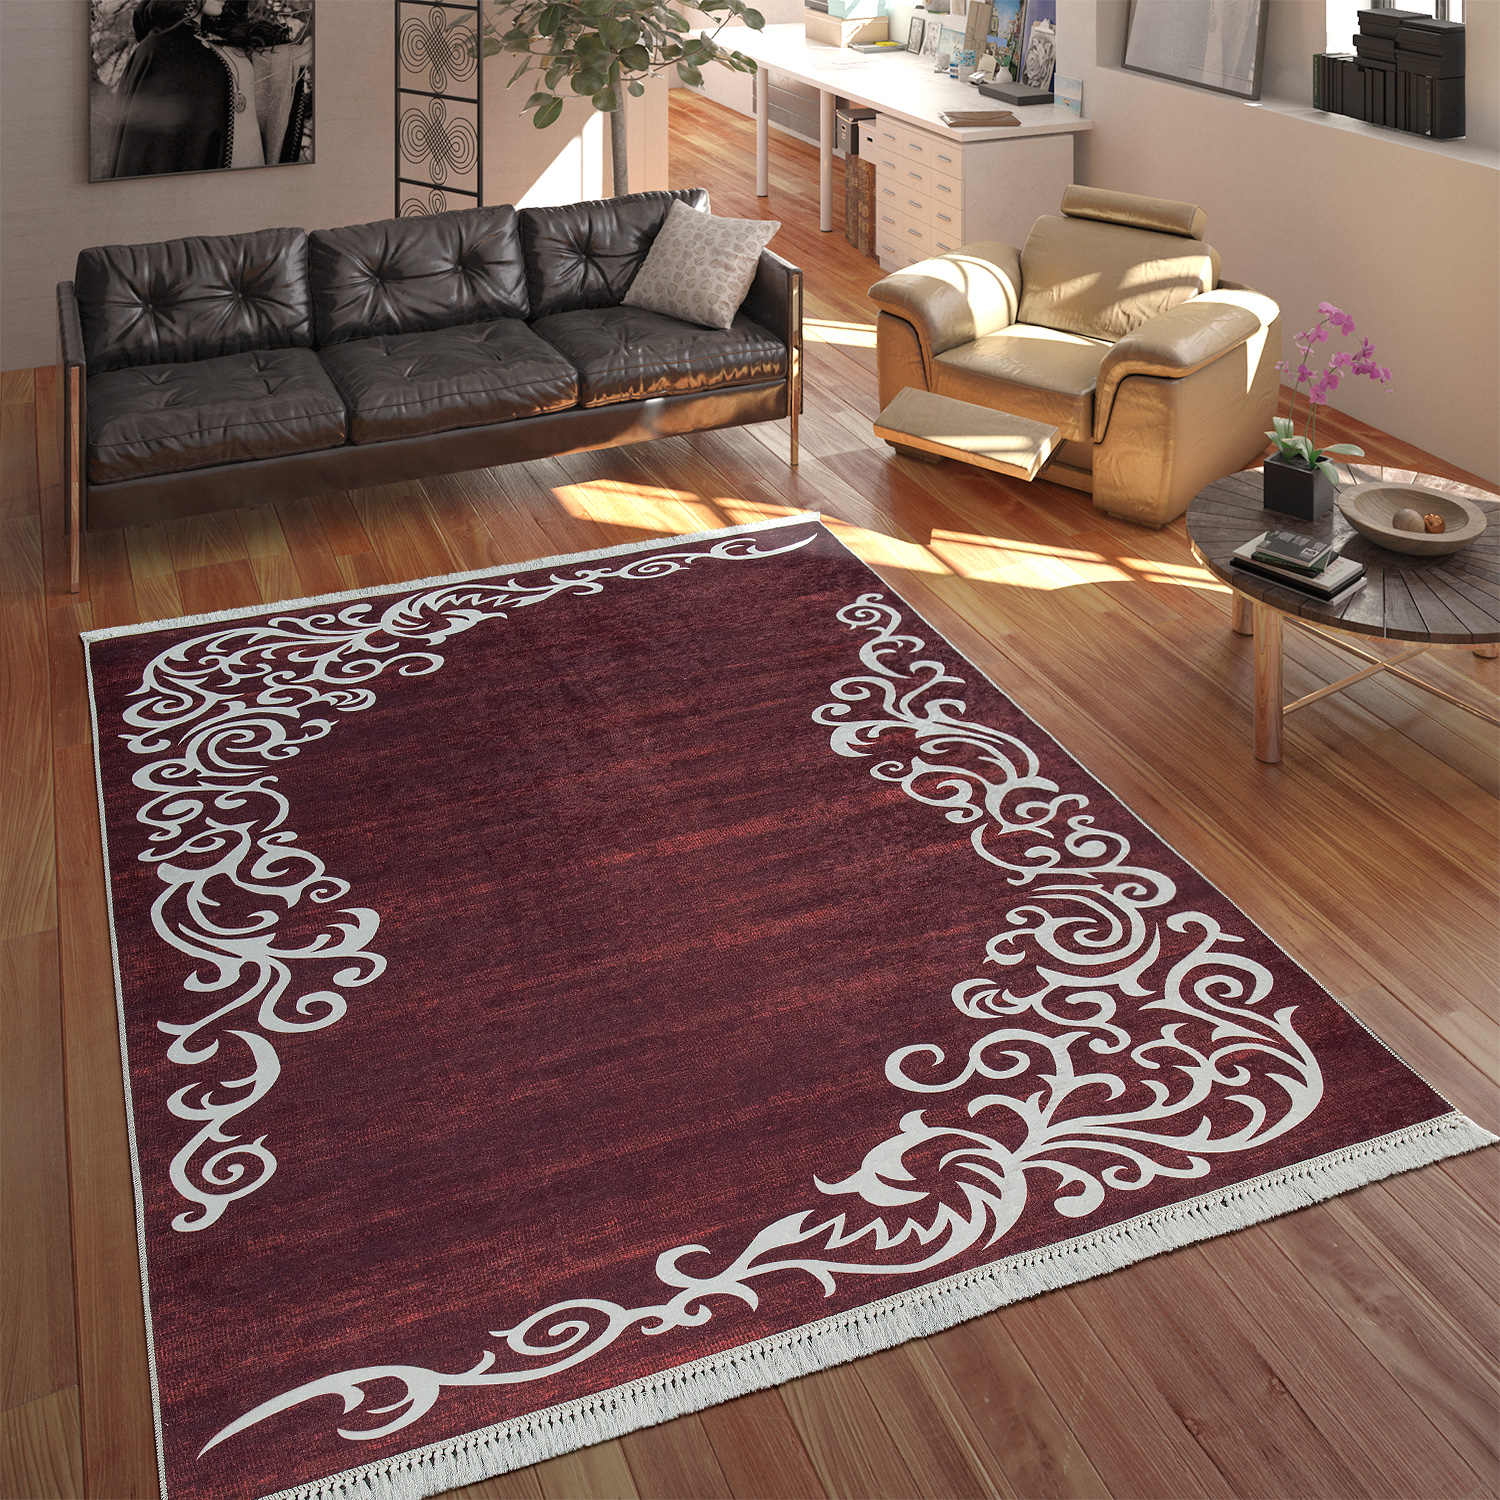 Modern Rug With Printed Tendril Pattern Trendy Design Red White